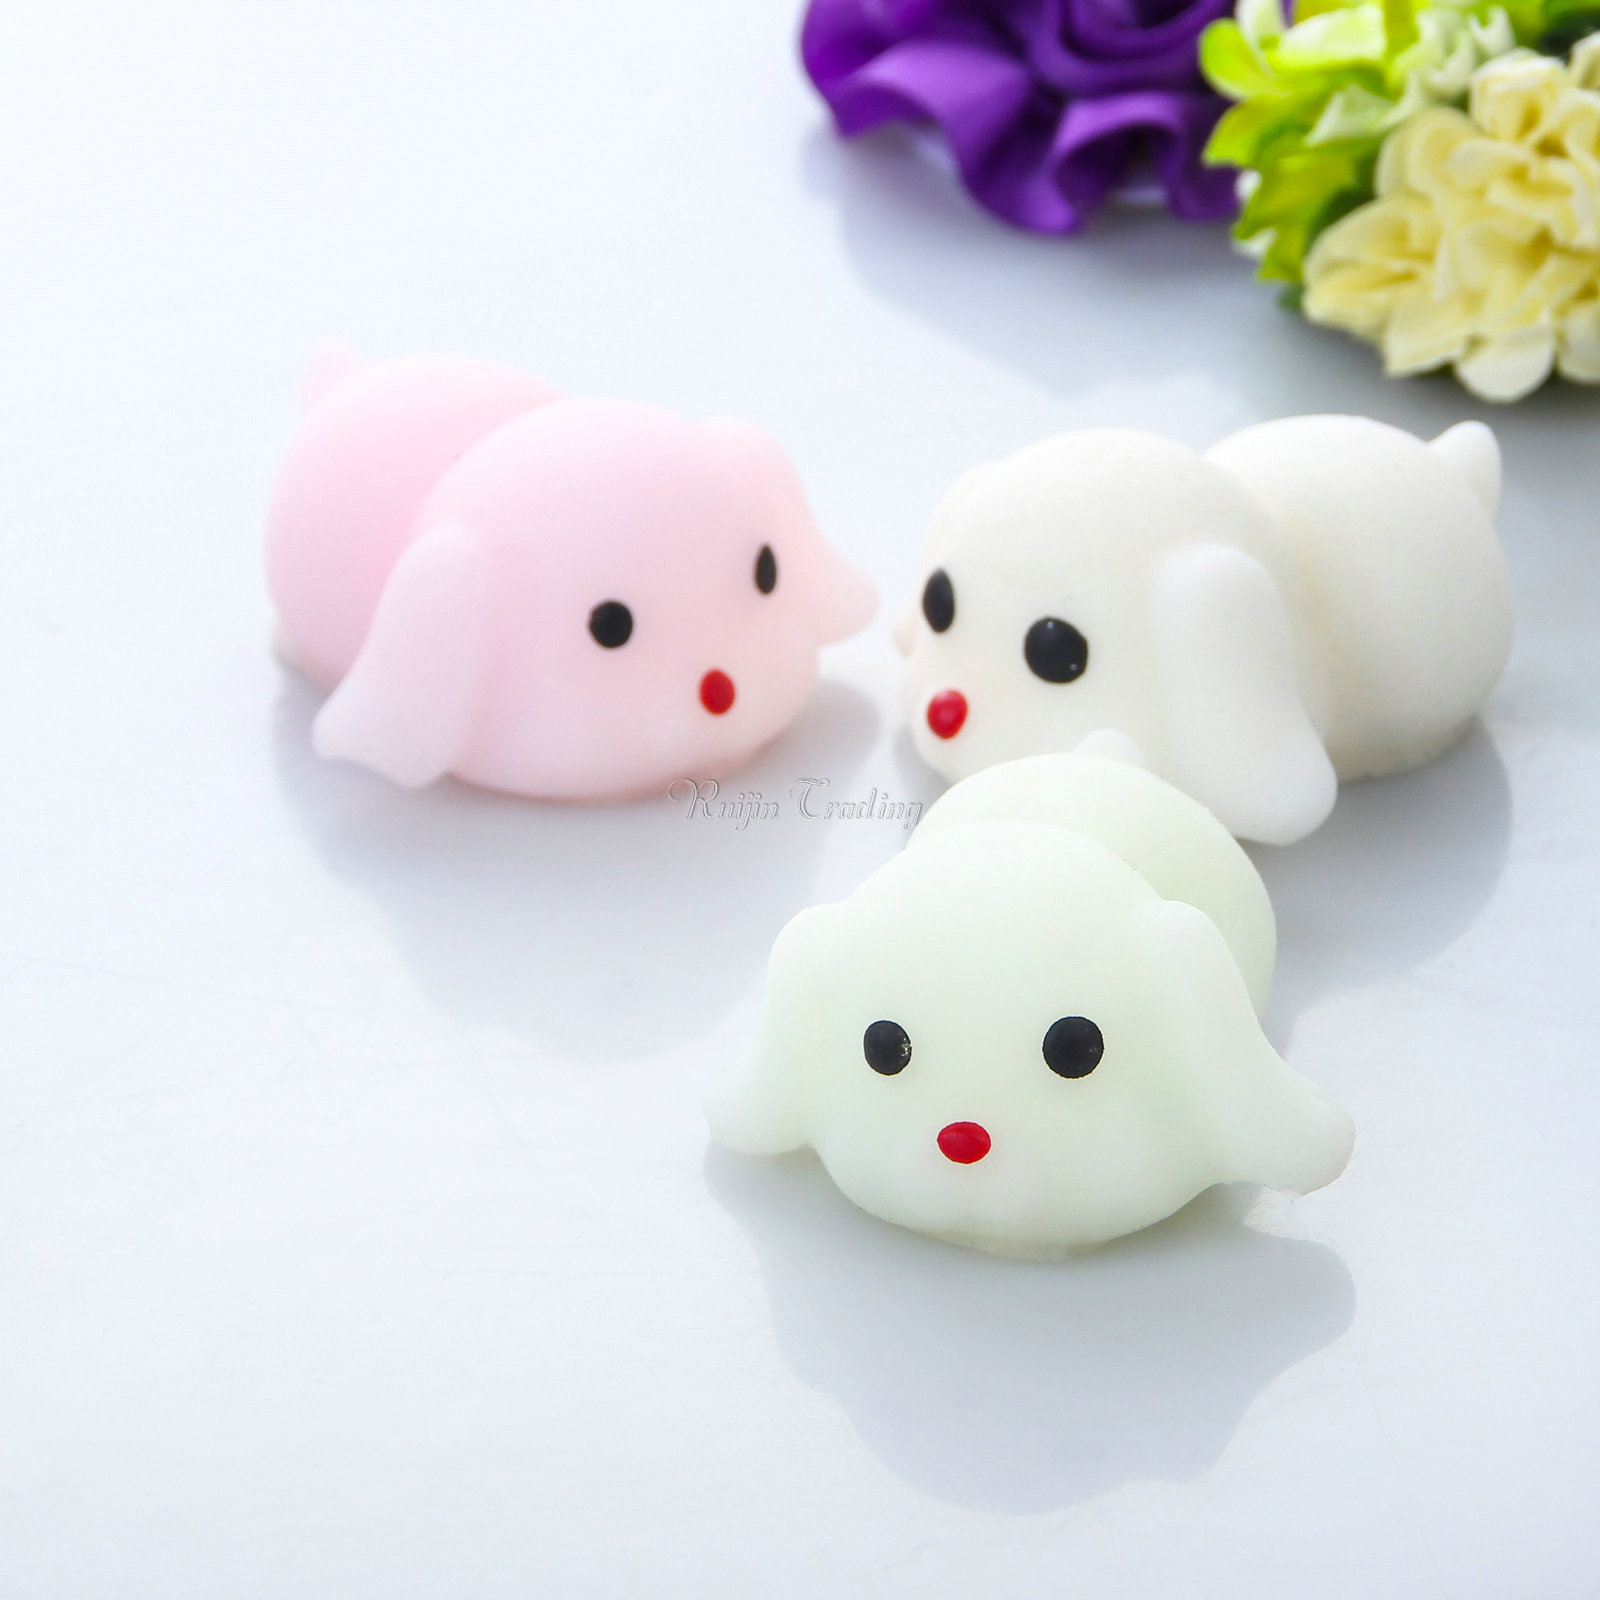 Squishy Dog Toys : Online Get Cheap Squishies Animals -Aliexpress.com Alibaba Group